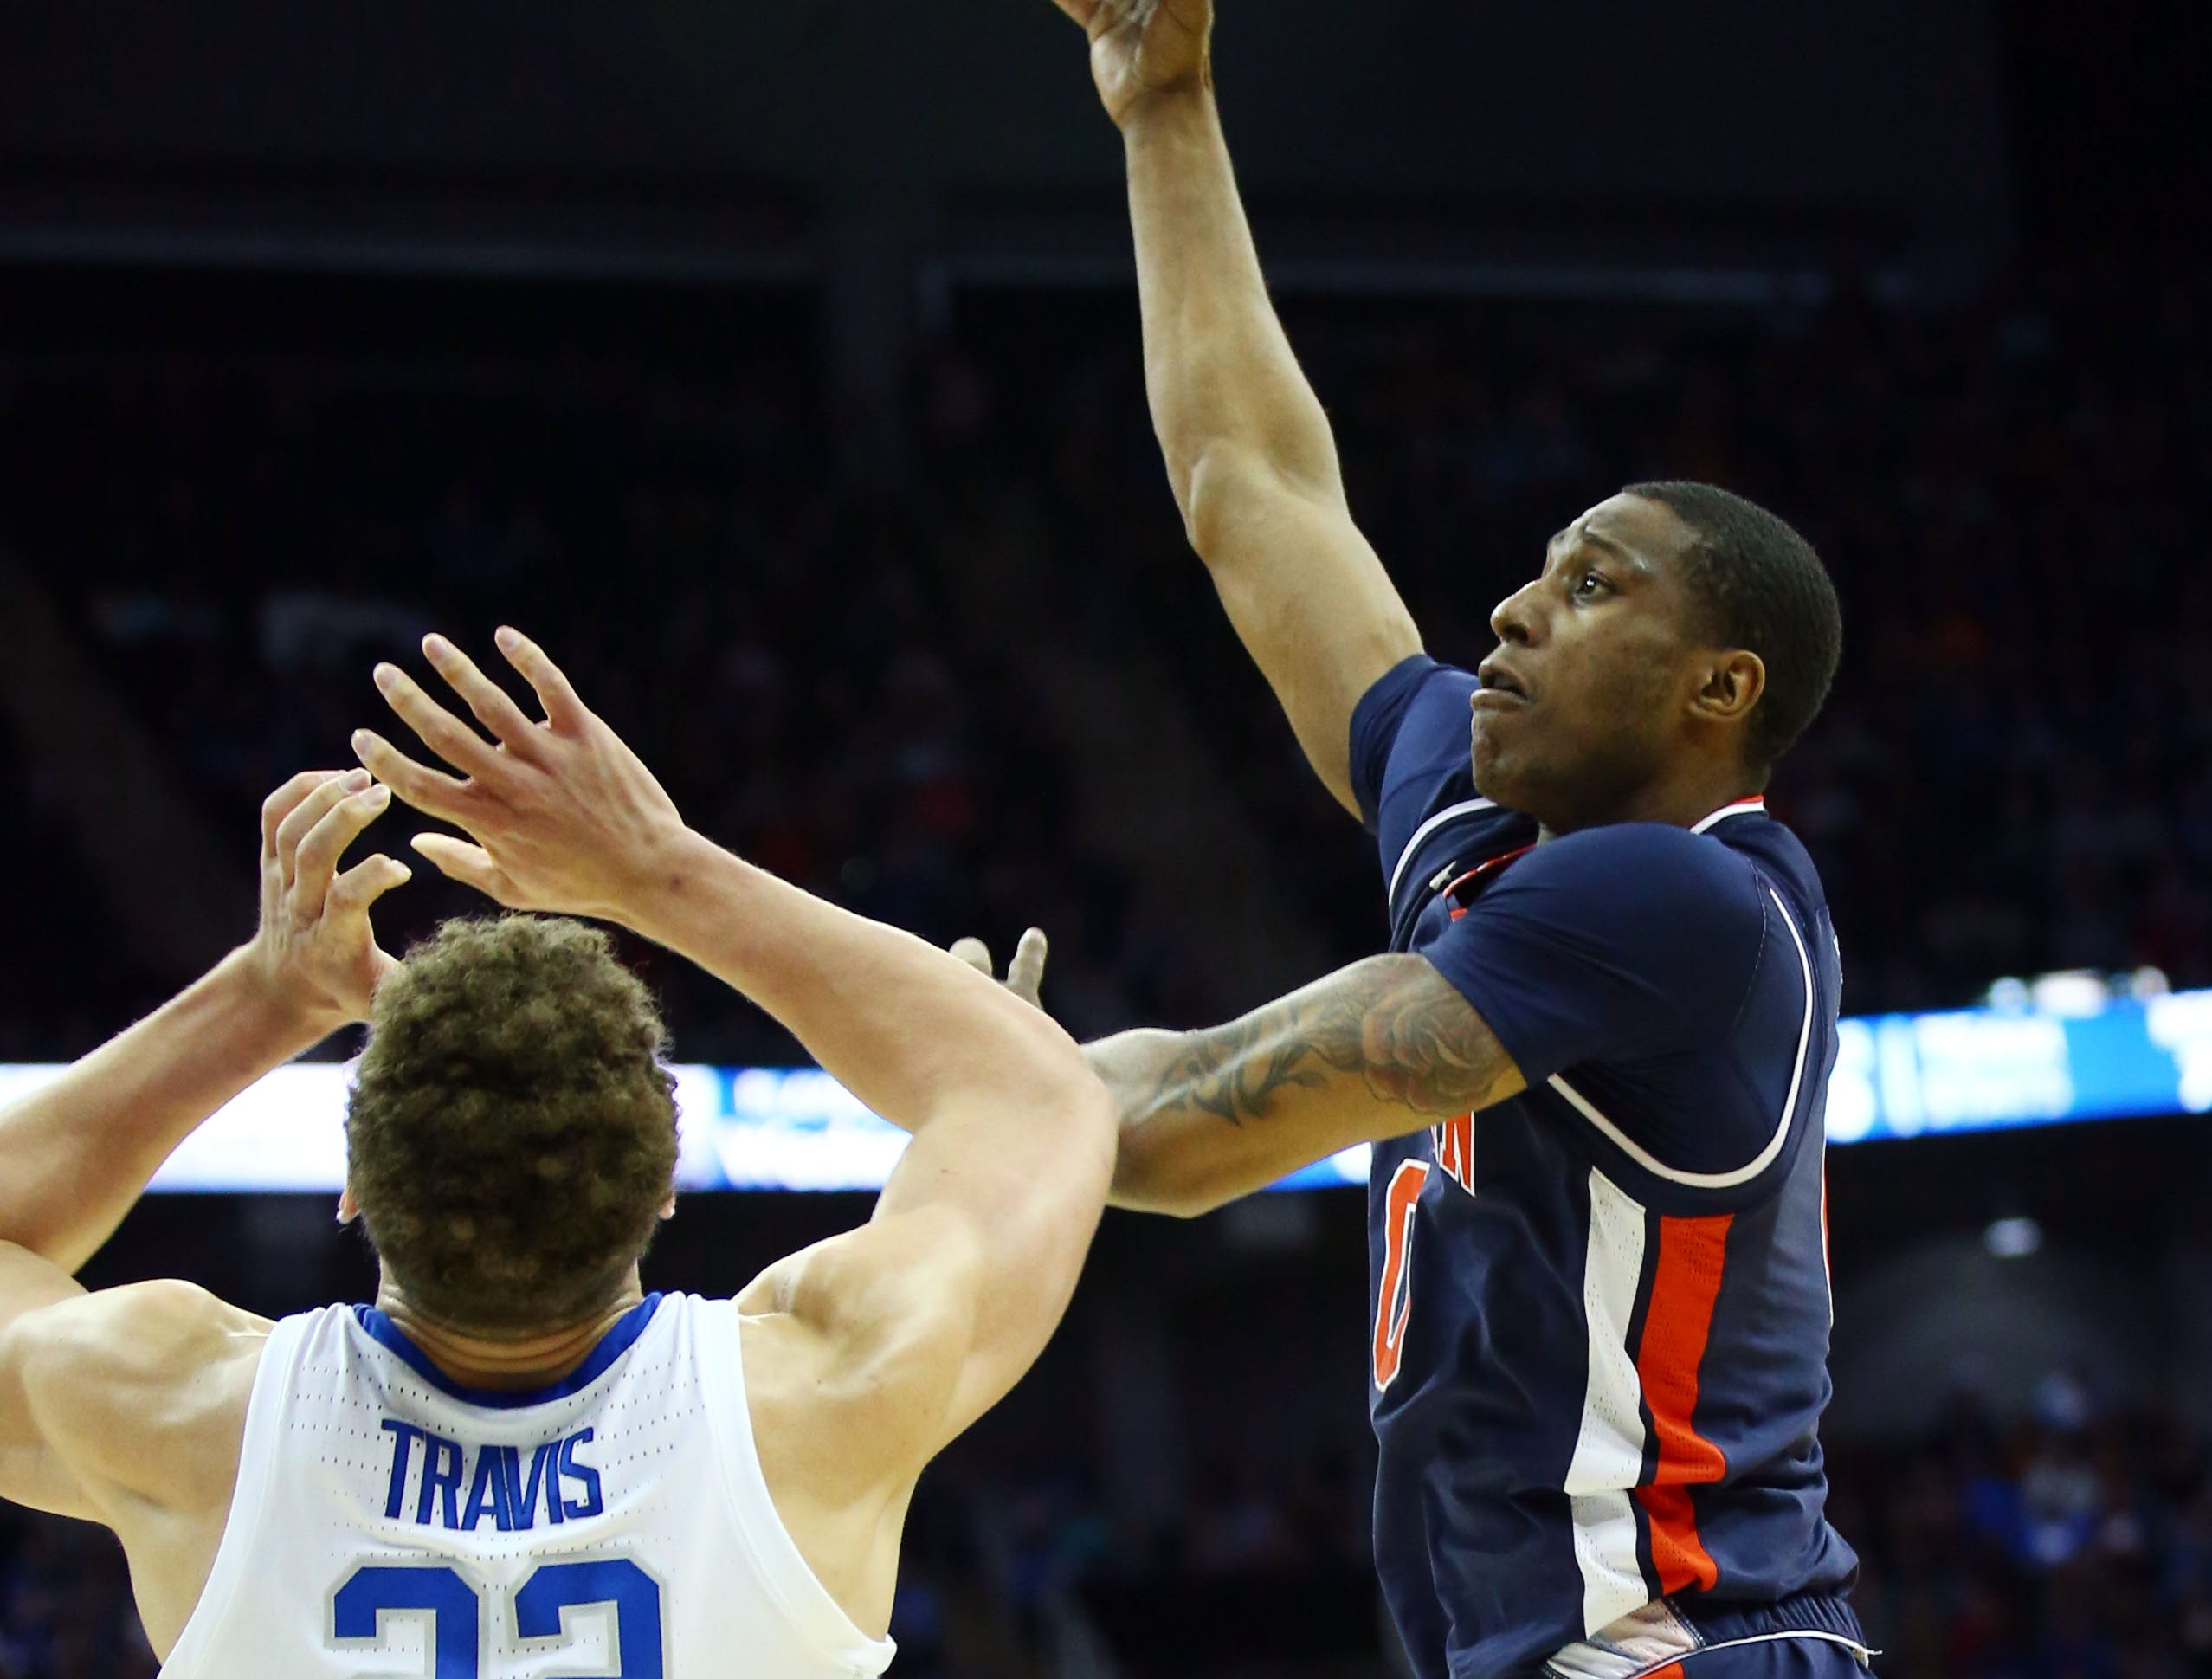 Mar 31, 2019; Kansas City, MO, United States; Auburn Tigers forward Horace Spencer (0) shoots over Kentucky Wildcats forward Reid Travis (22) during the first half in the championship game of the midwest regional of the 2019 NCAA Tournament at Sprint Center. Mandatory Credit: Jay Biggerstaff-USA TODAY Sports